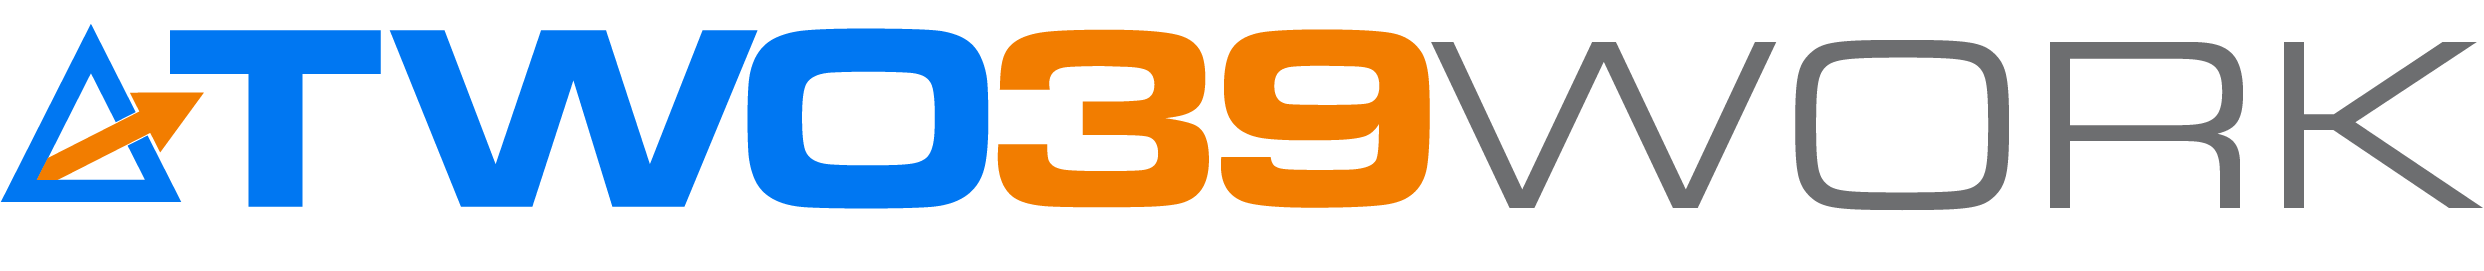 TWO_39_WORK_LOGO_v2.png